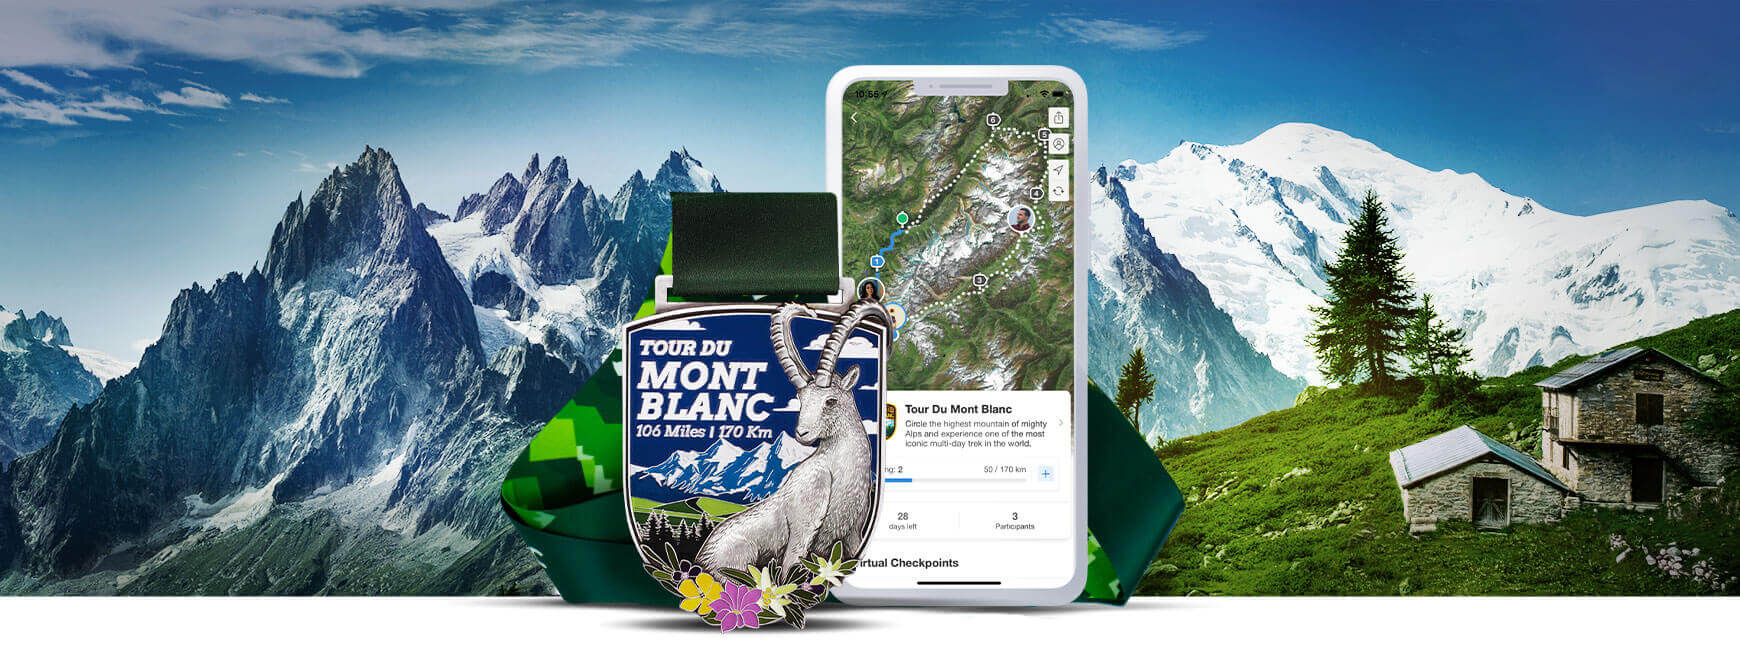 Tour du Mont Blanc Virtual Challenge